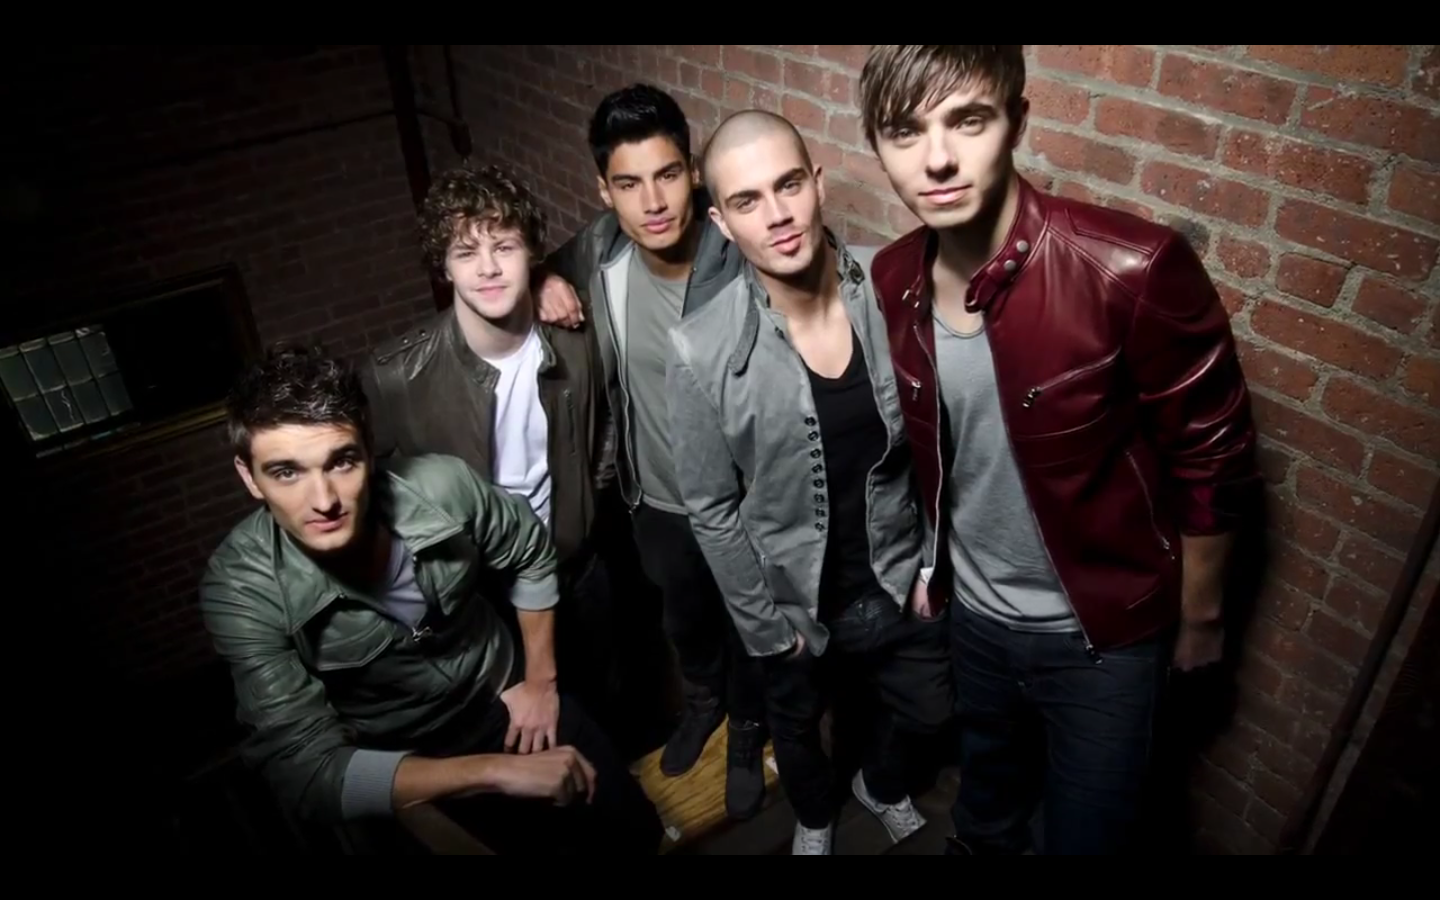 The wanted the wanted - photo#6